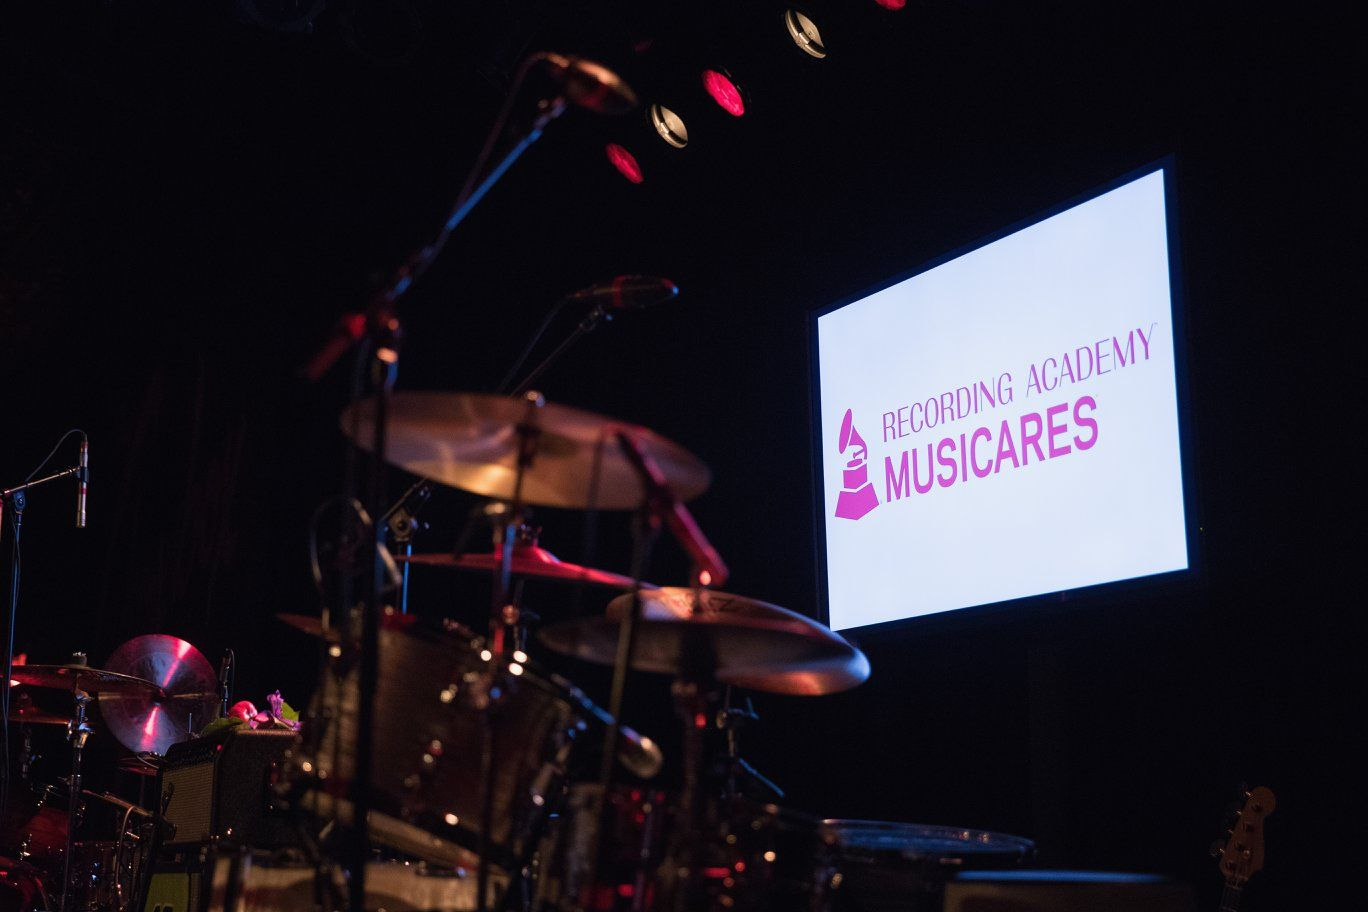 Recording Academy Musicares digital sign